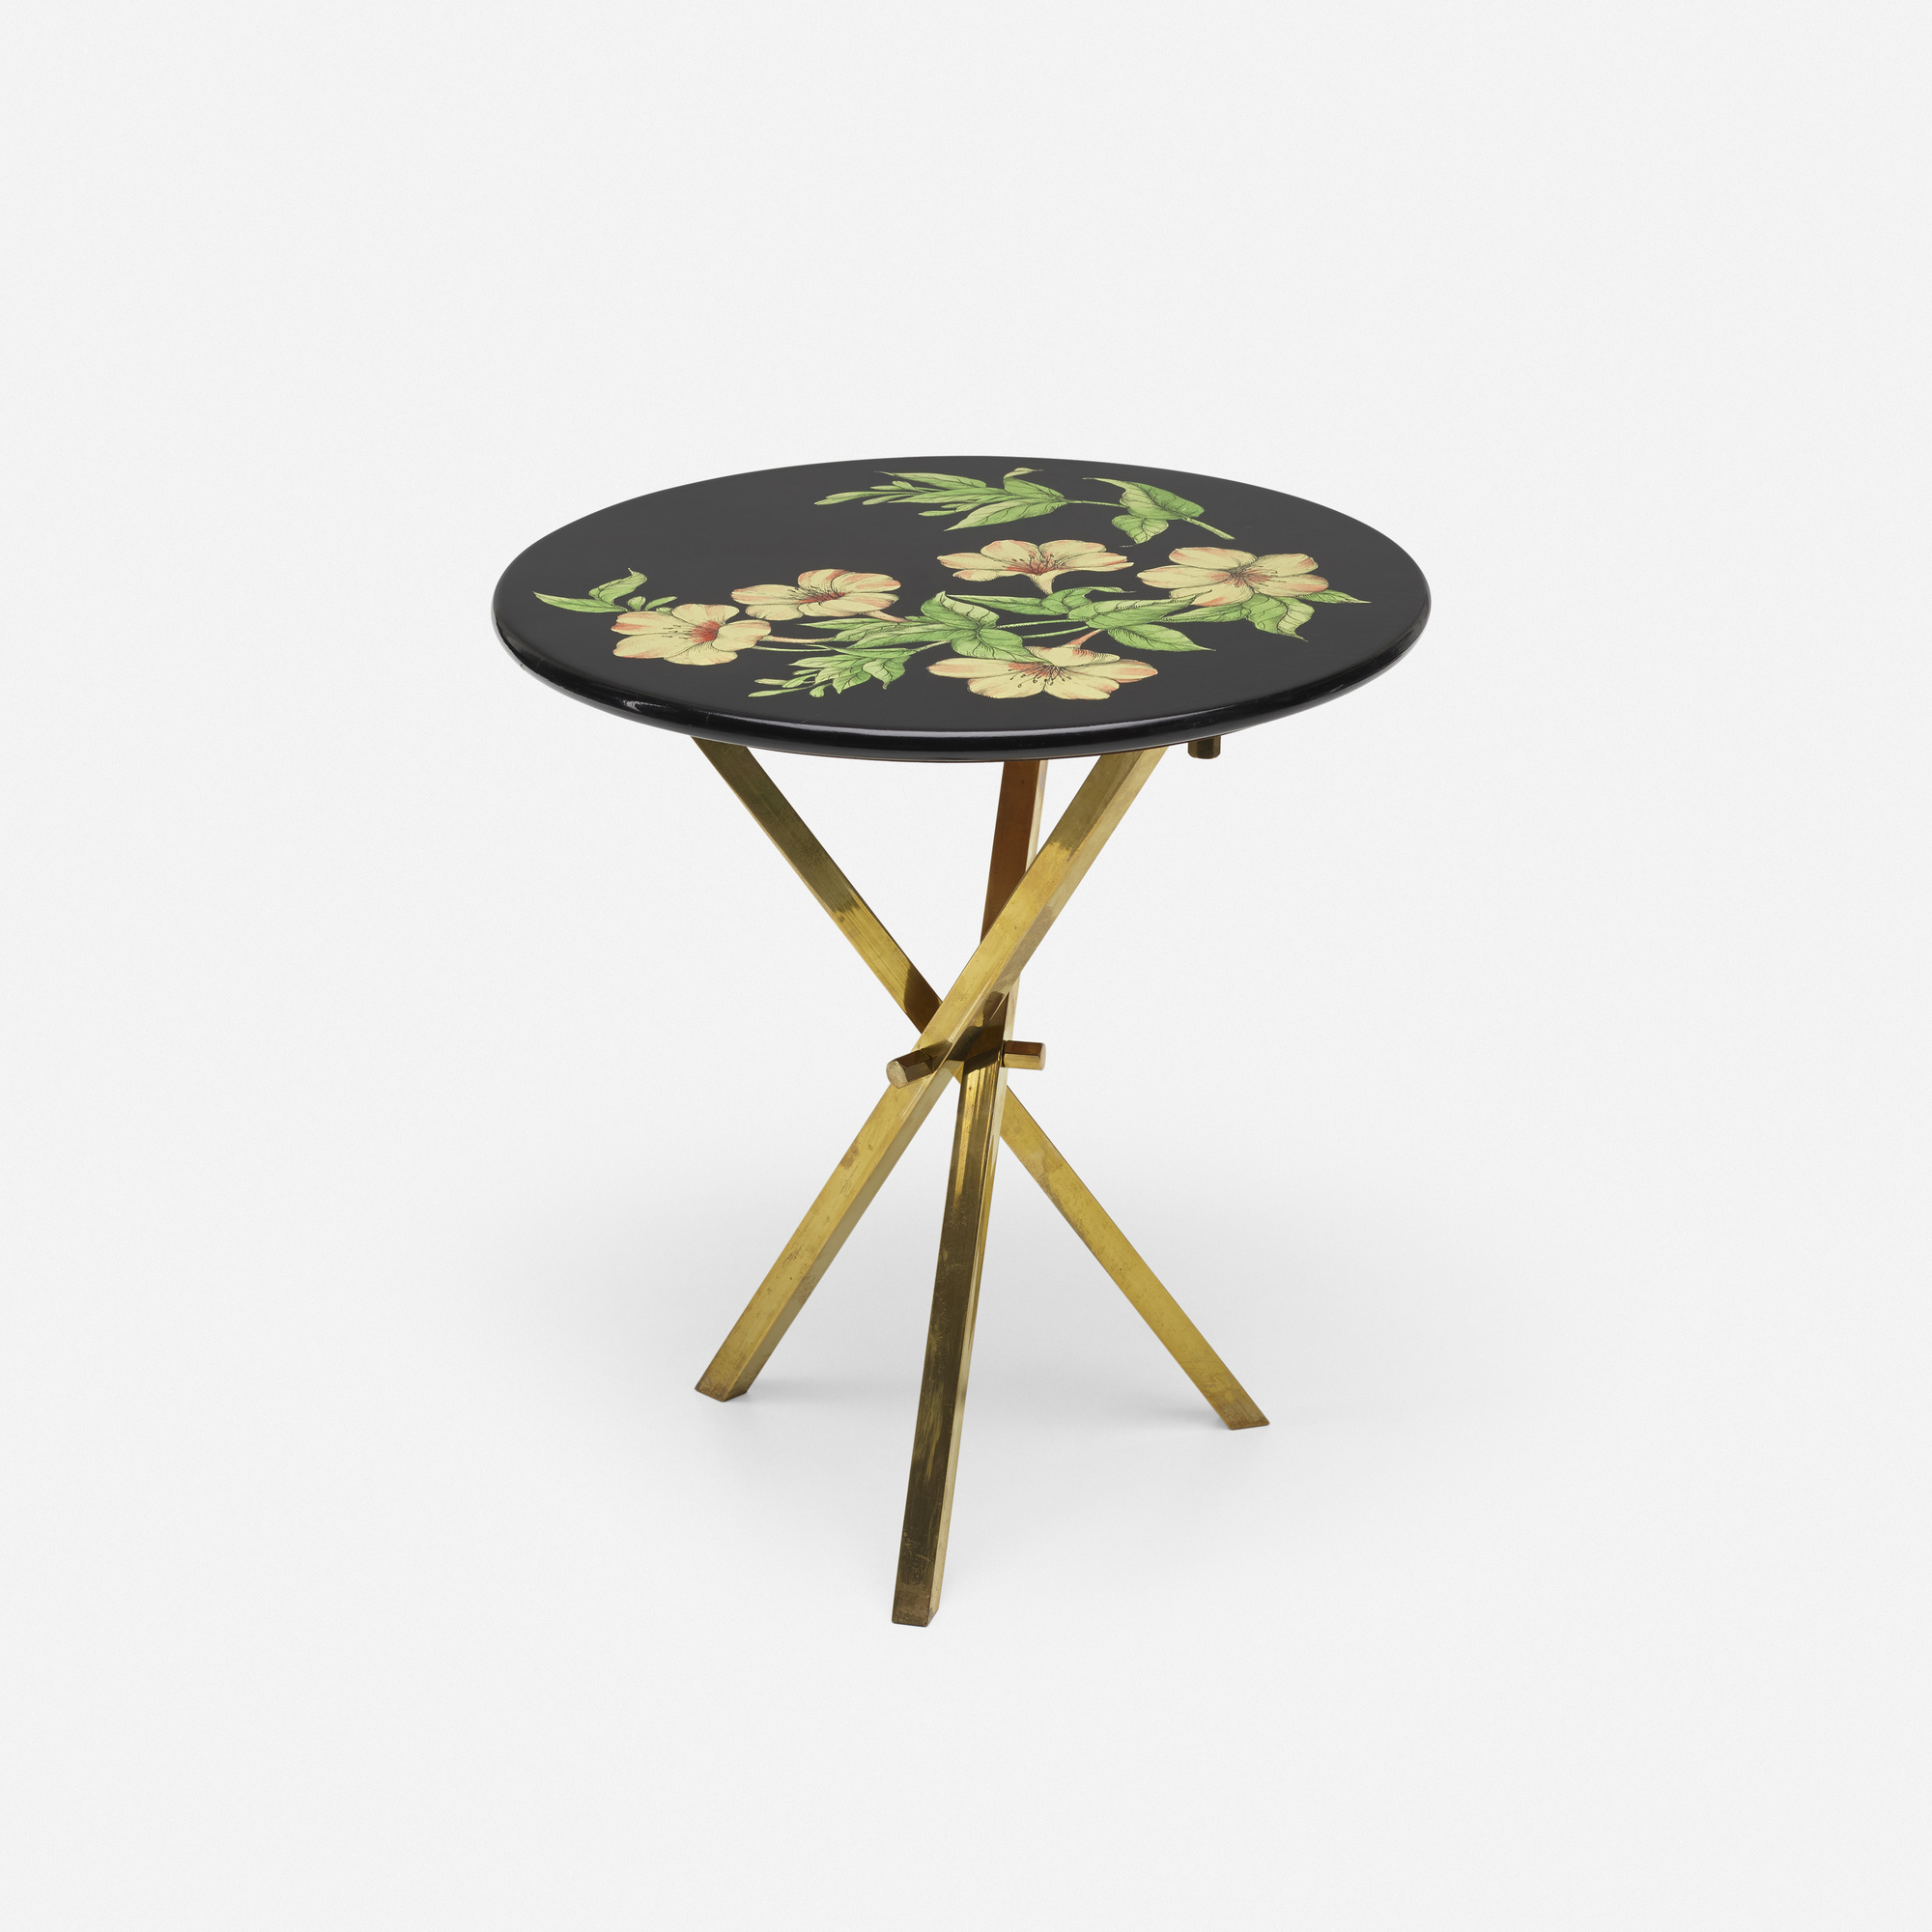 168: Piero Fornasetti / Occasional Table (1 Of 4)